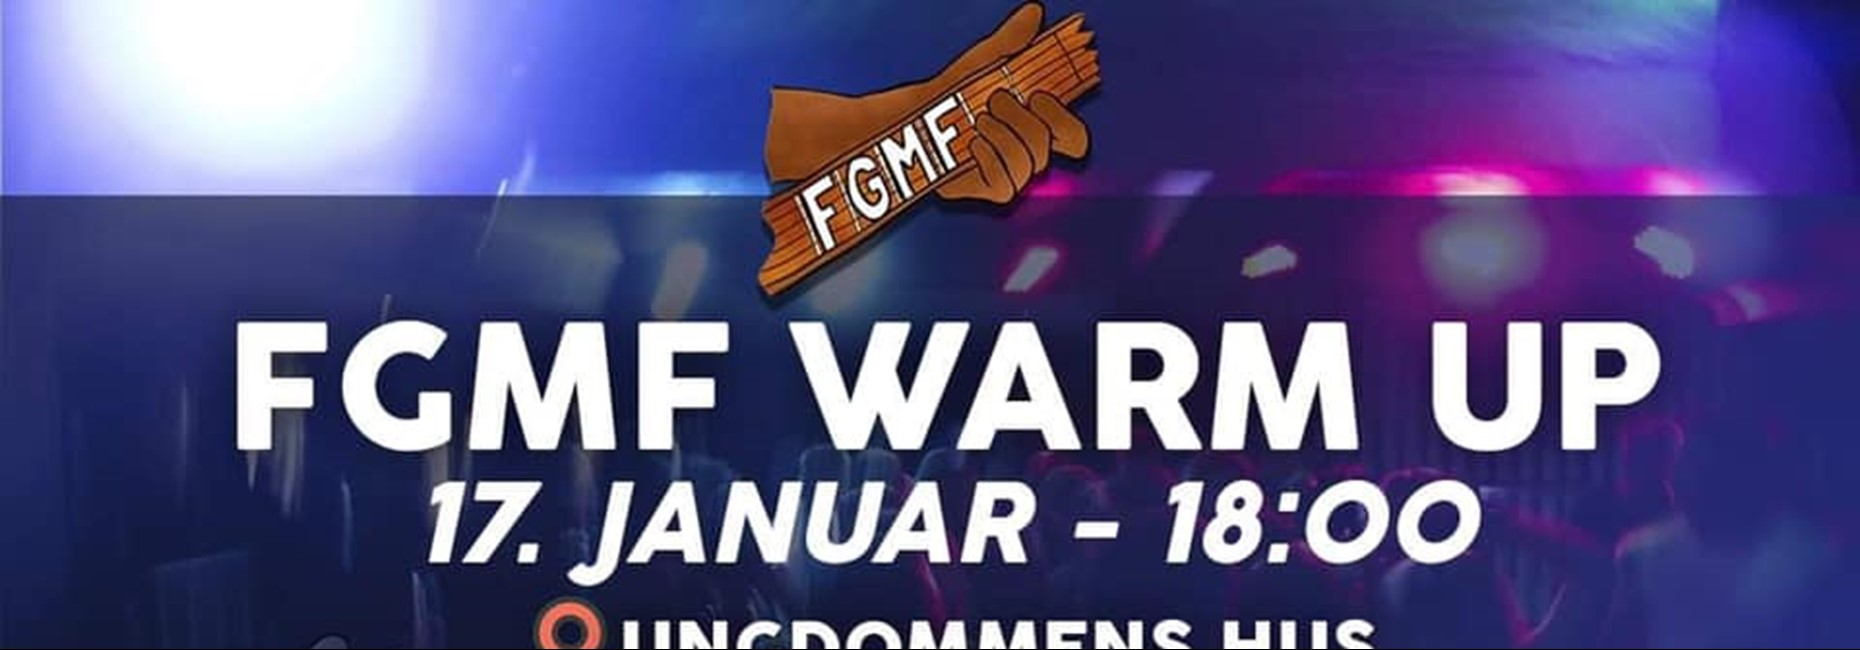 FGMF Warm Up